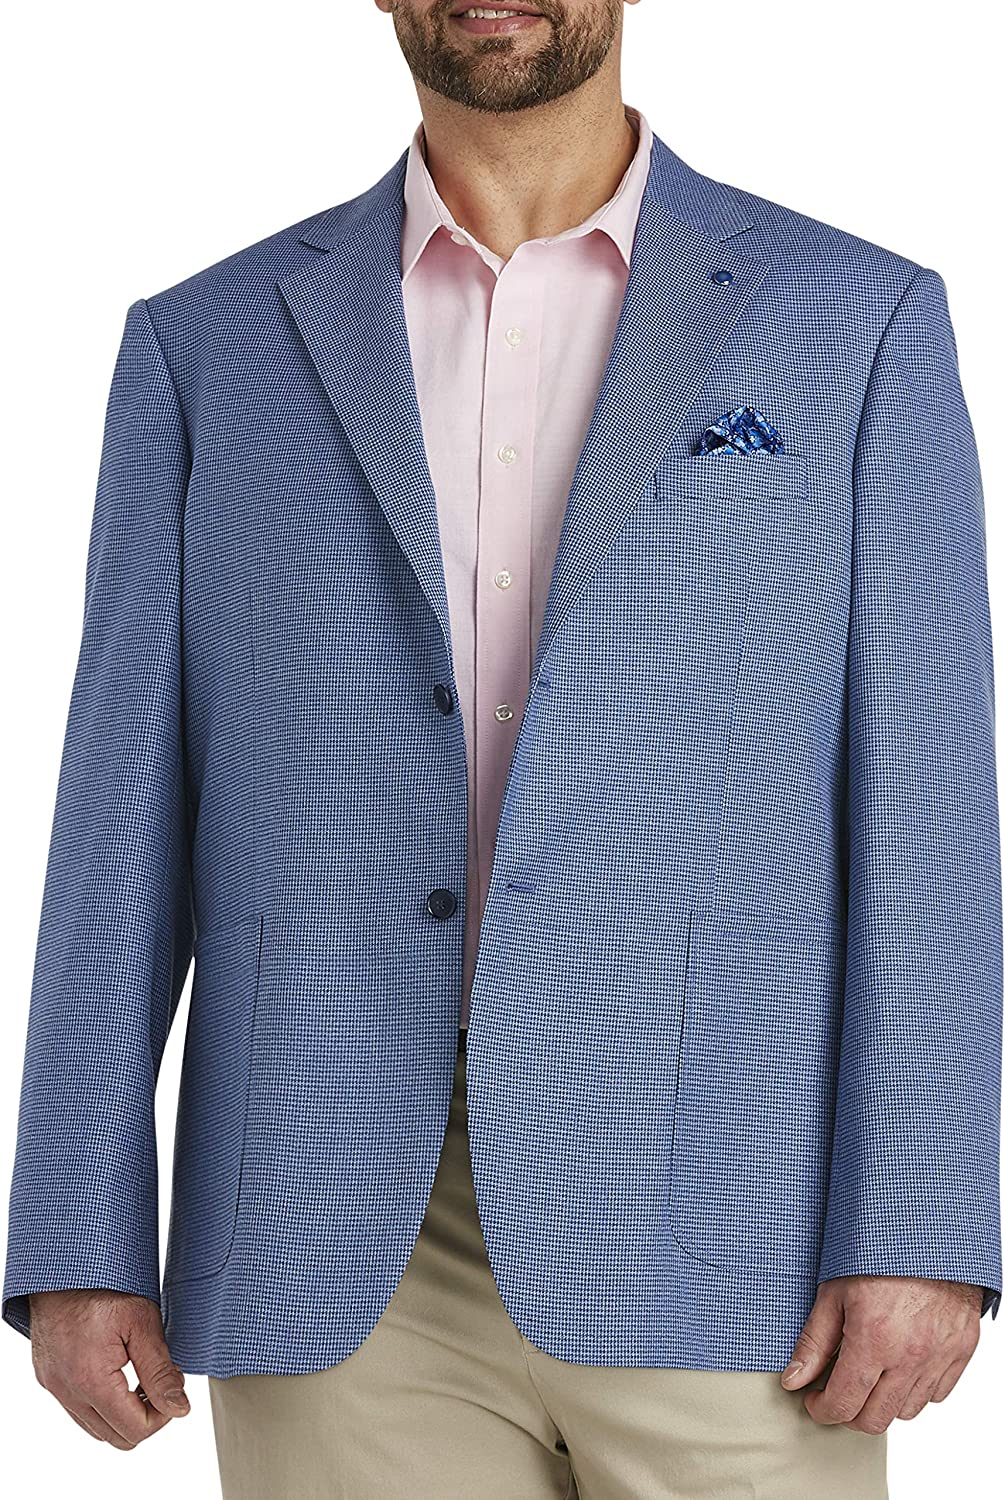 Oak Hill by DXL Big and Tall Jacket-Relaxer Patch Pocket Sport Coat, Blue